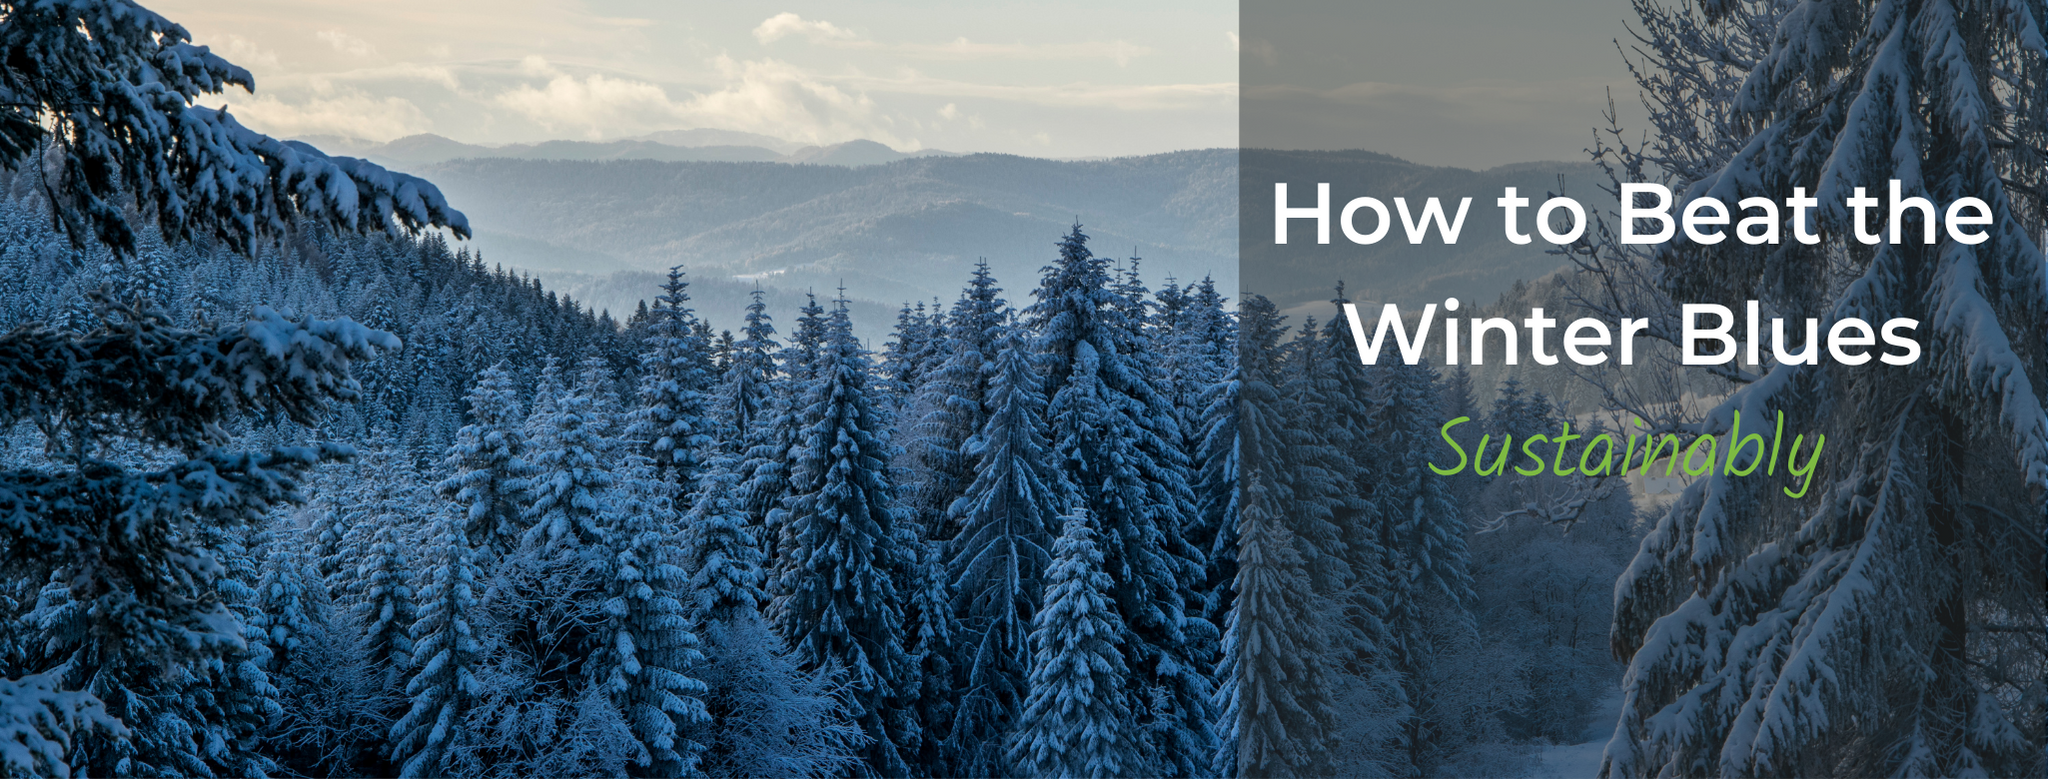 Top 5 Sustainable Ways to Beat the Winter Blues